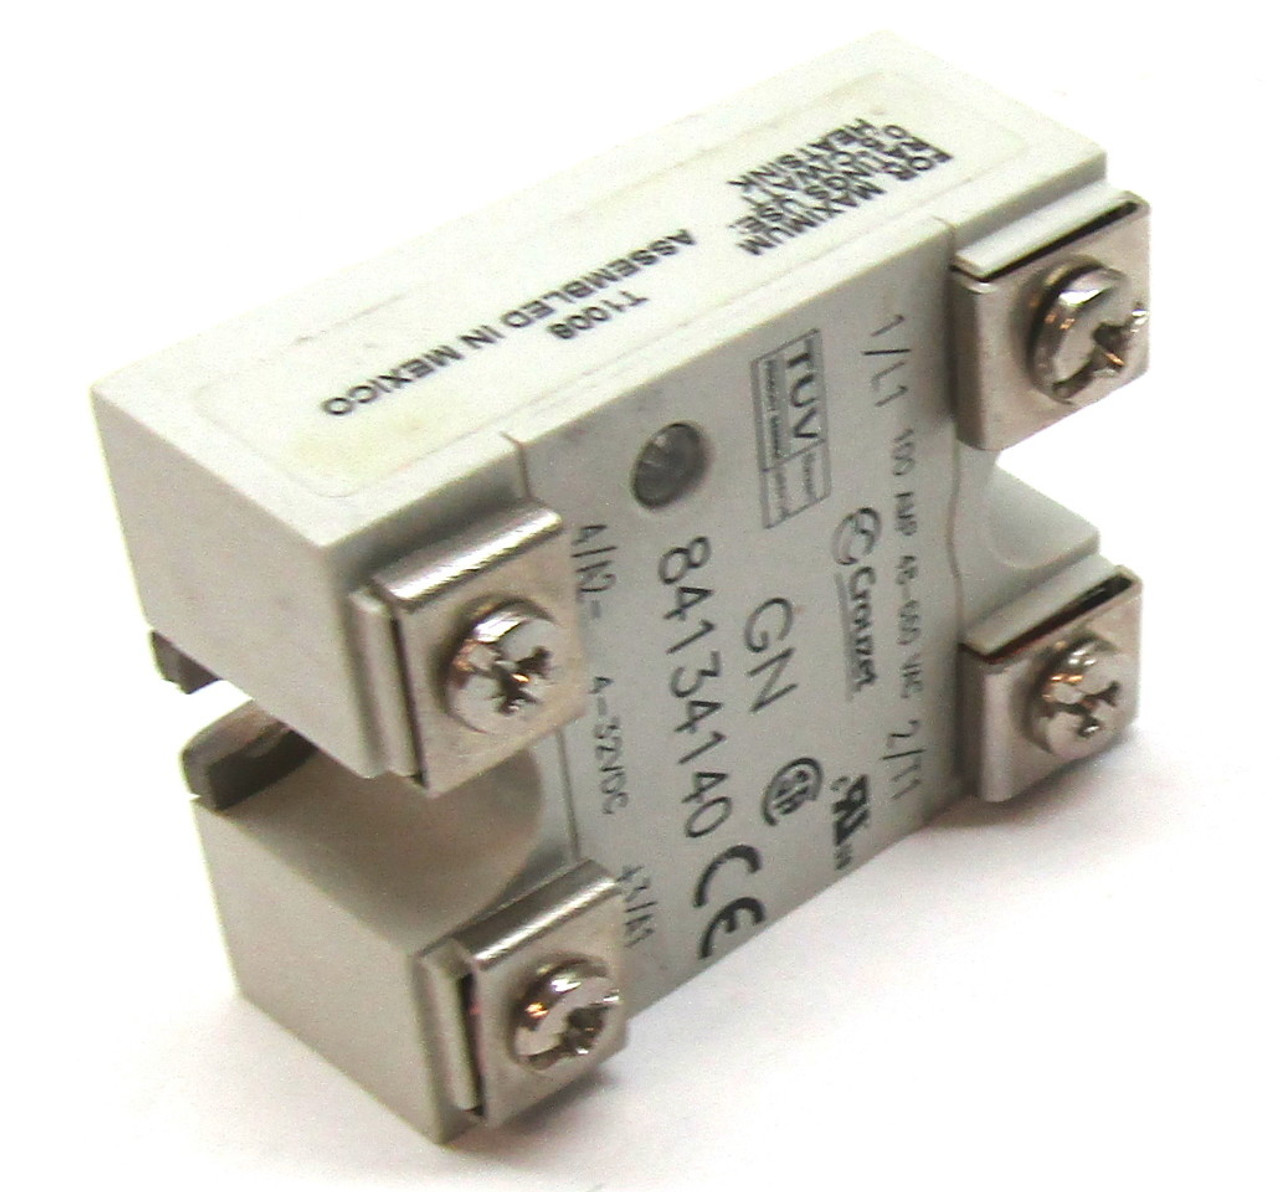 84134140 Solid State Relay 48660 VAC 100 Amp 2T1